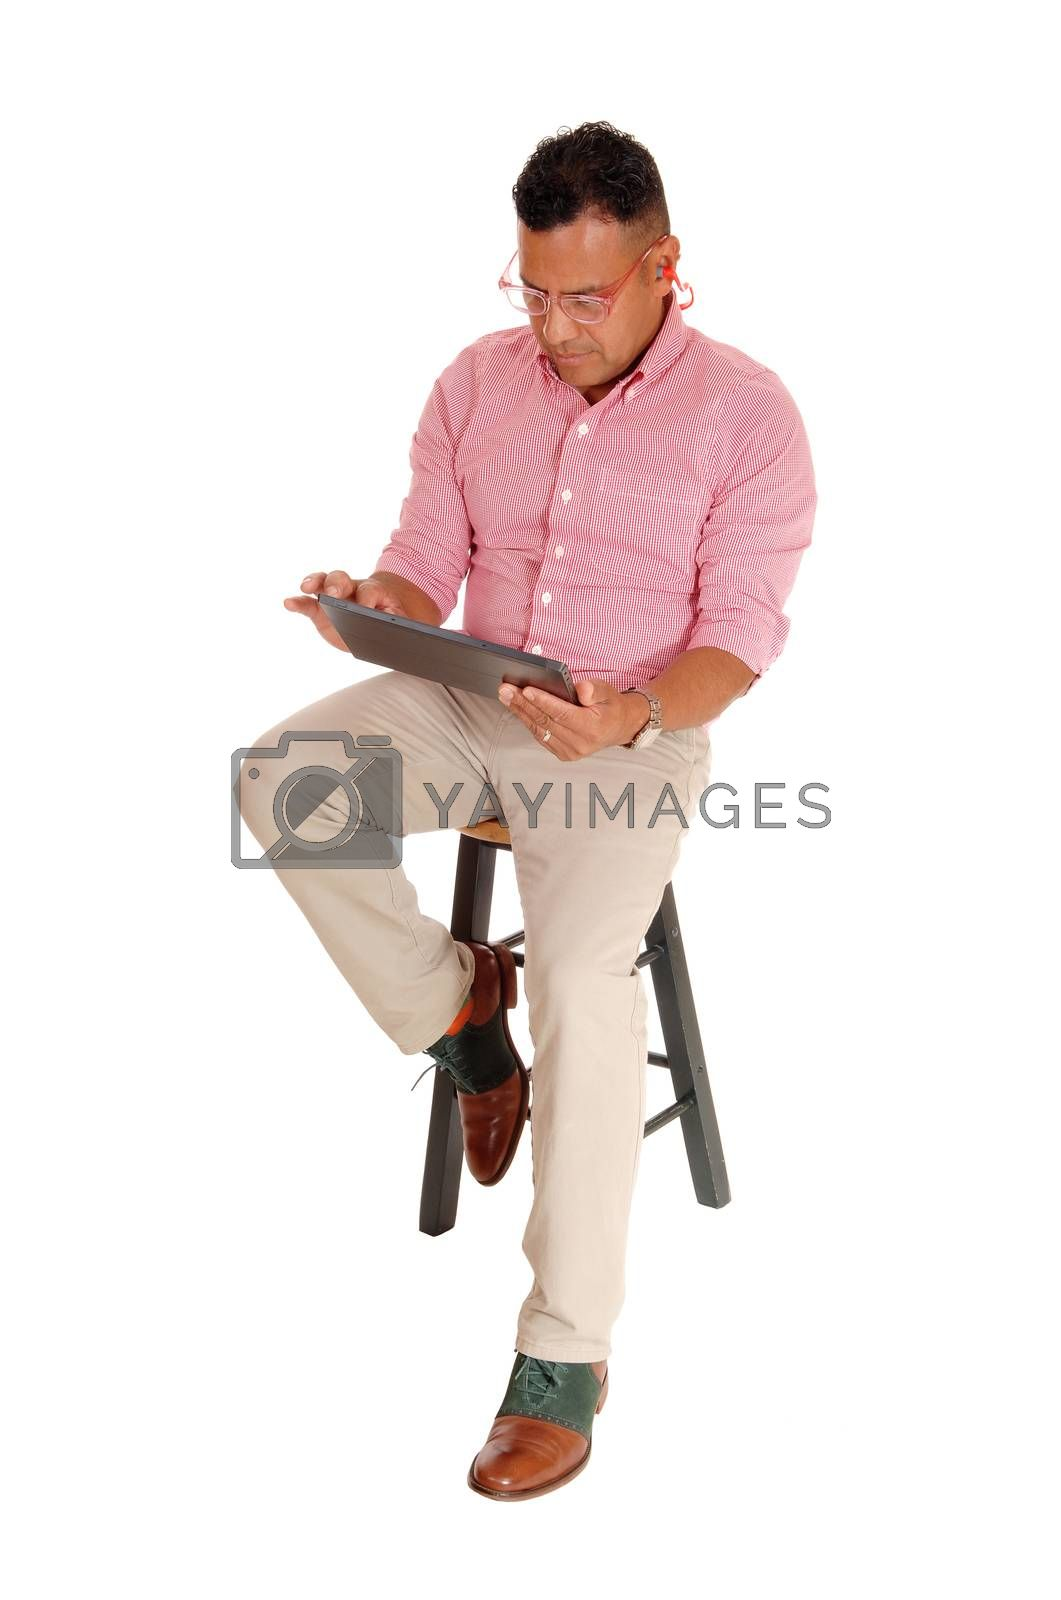 Royalty free image of Hispanic man sitting with tablet pc. by feierabend